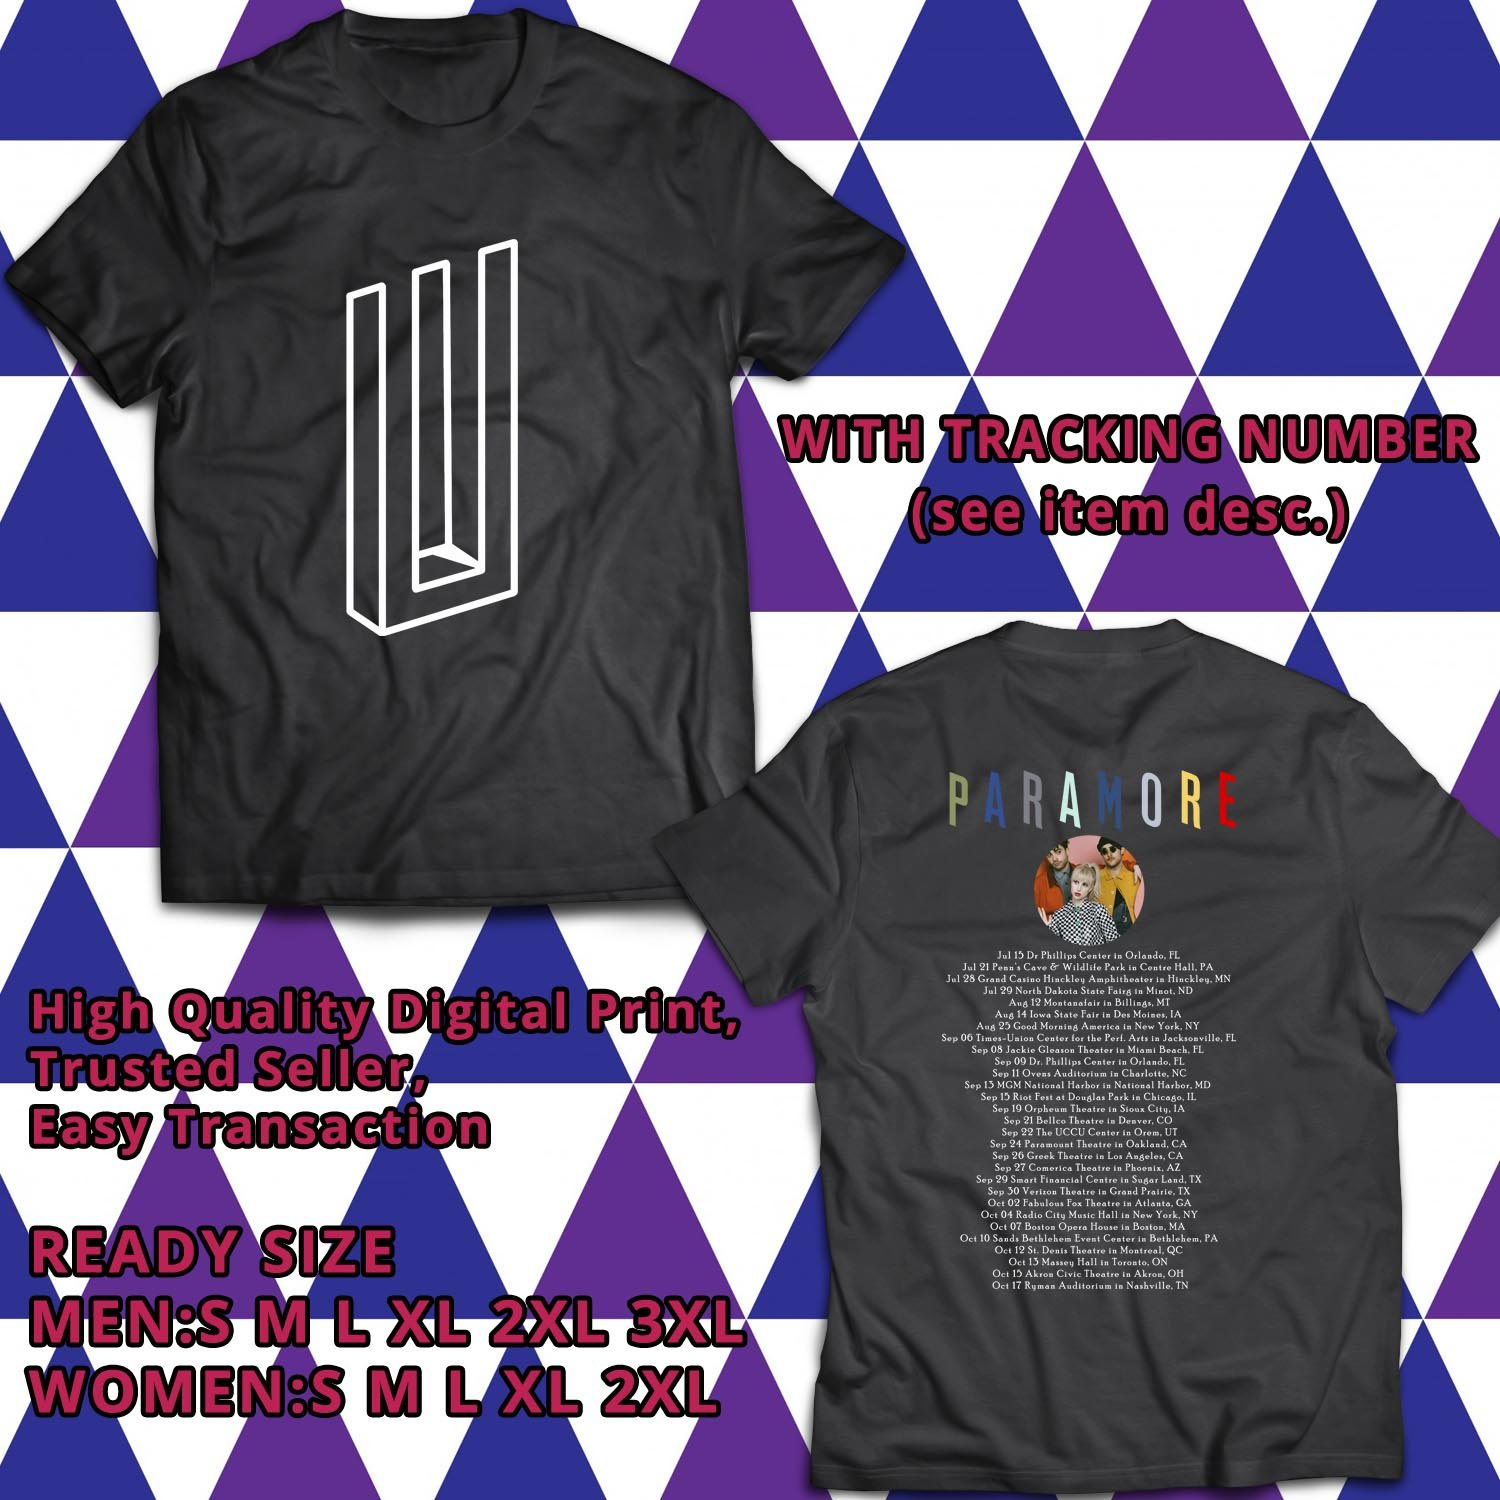 HITS PARAMORE AFTER LAUGHTER ALBUM TOUR TWO 2017 BLACK TEE'S 2SIDE MAN WOMEN ASTR